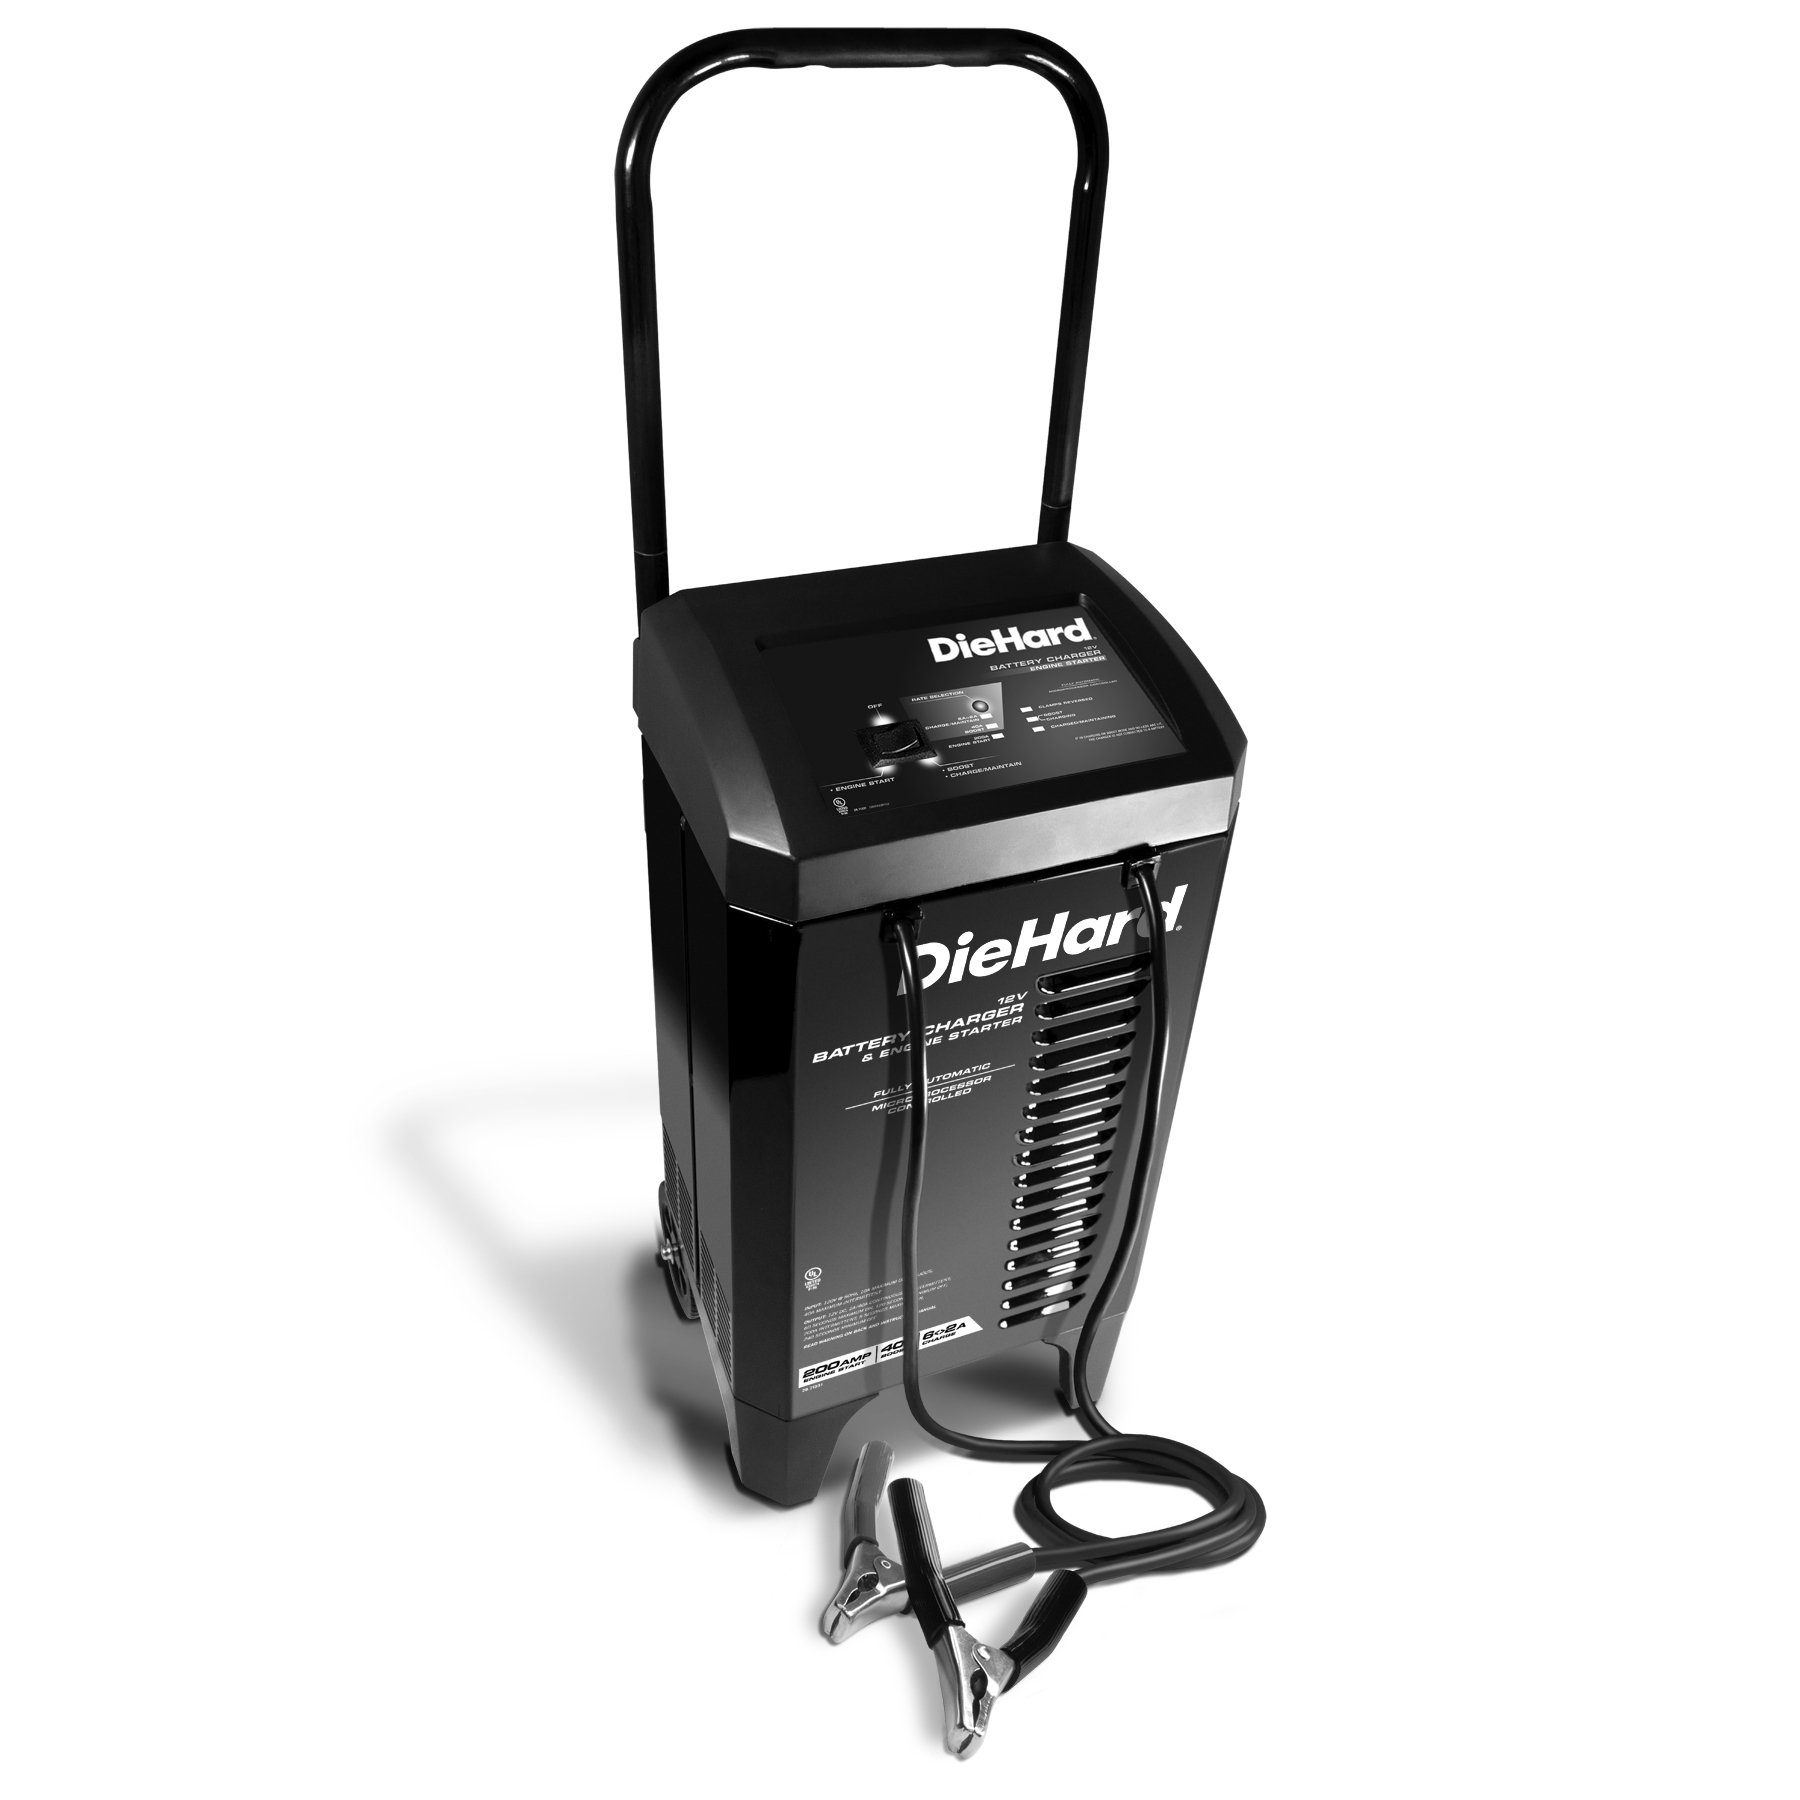 Cheap Charge Battery Charger Find Deals On Sterling Power Usa 20 Amp 2 Bank Get Quotations Diehard 71331 Smart Wheel Maintainer 12 Volt 6a 40a Boost